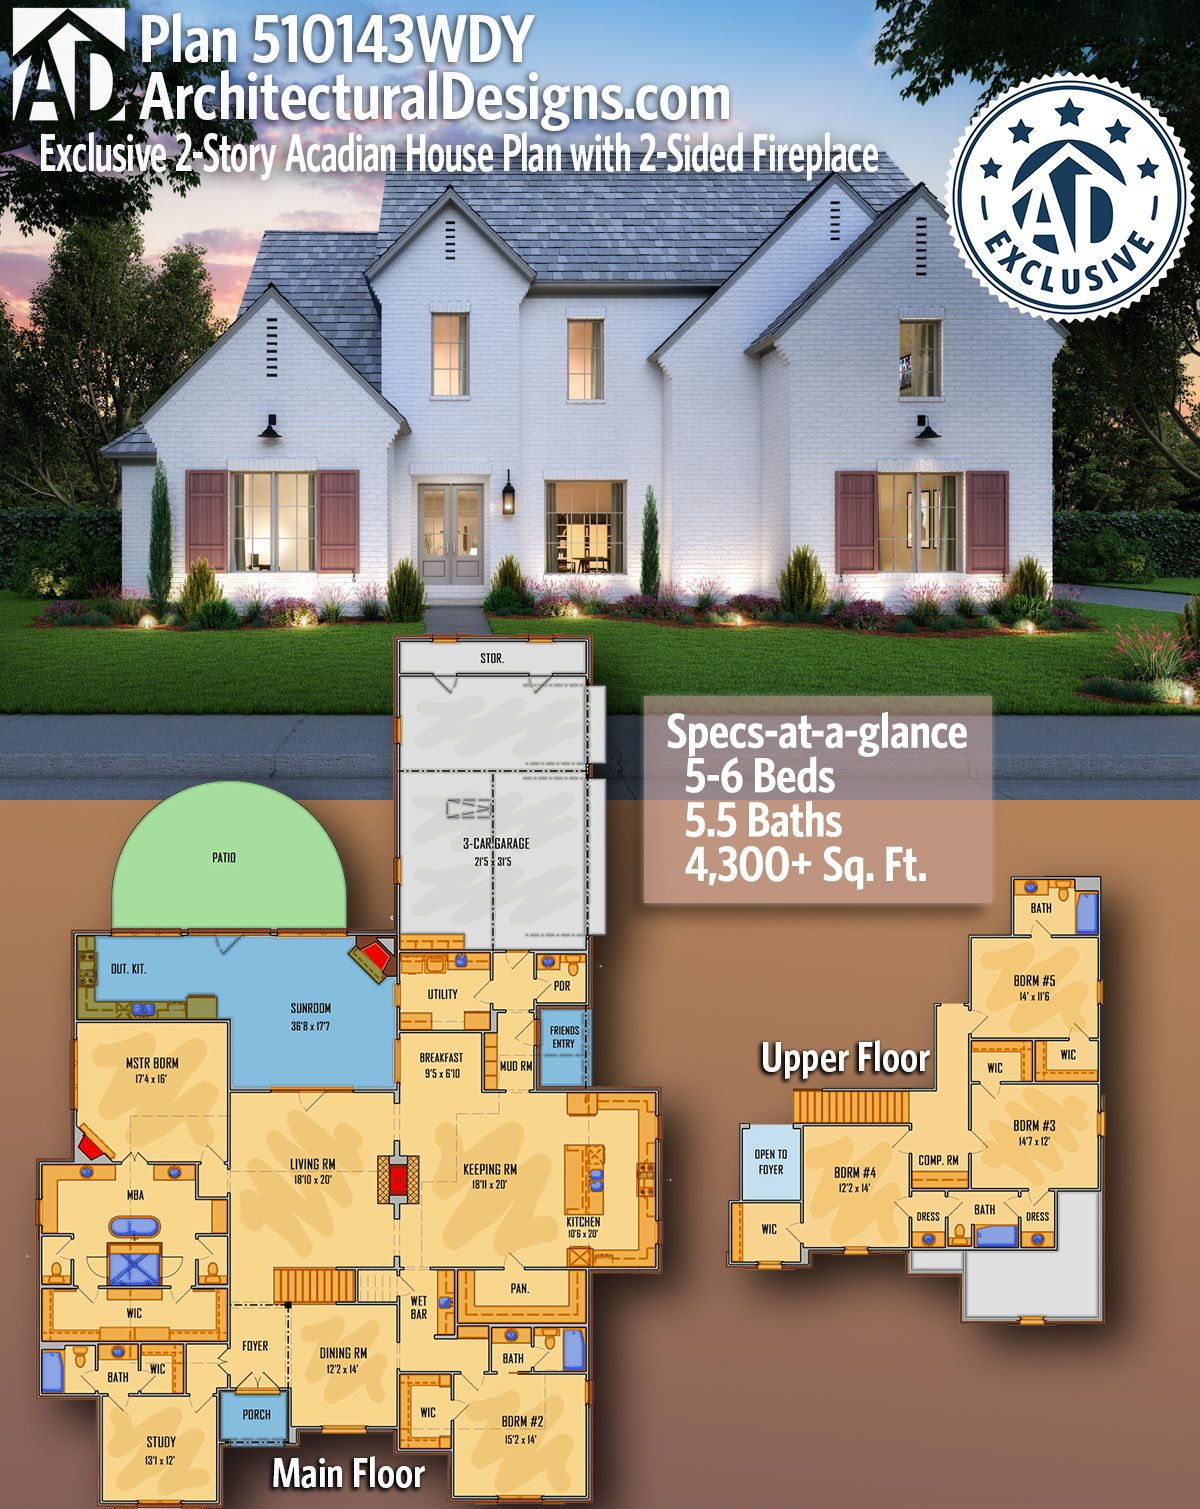 Plan 510143wdy Exclusive 2 Story Acadian House Plan With 2 Sided Fireplace In 2020 Acadian House Plans House Plans Southern House Plan